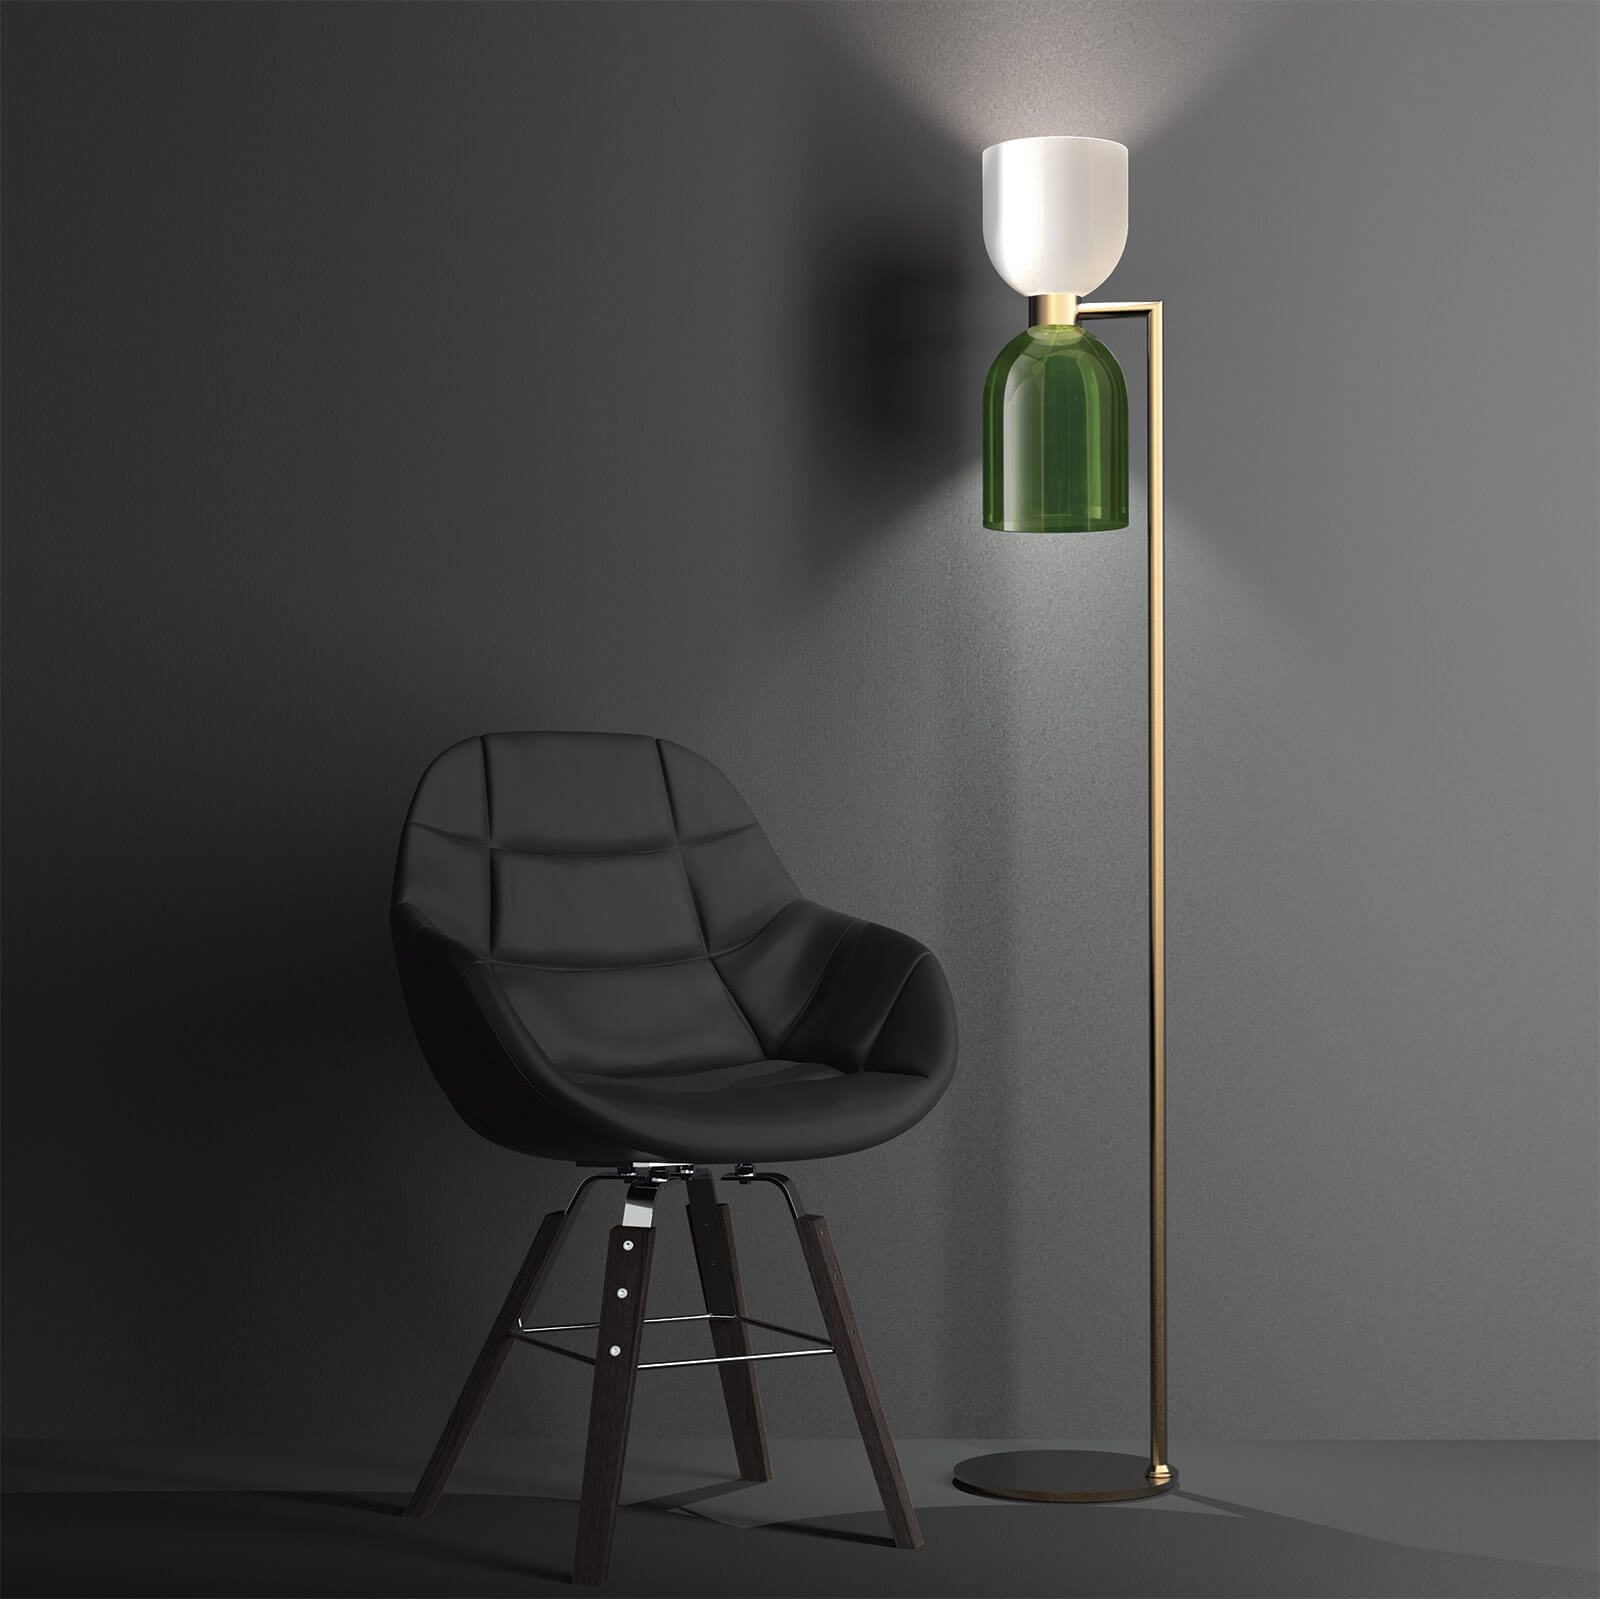 CATERINA FLOOR - Incanto Modern Collection 4026 / PCaterina Floor in metal with brushed gold with opal white and green glass diffuserAvailable in different colours.Design THDP & Simone Bretti